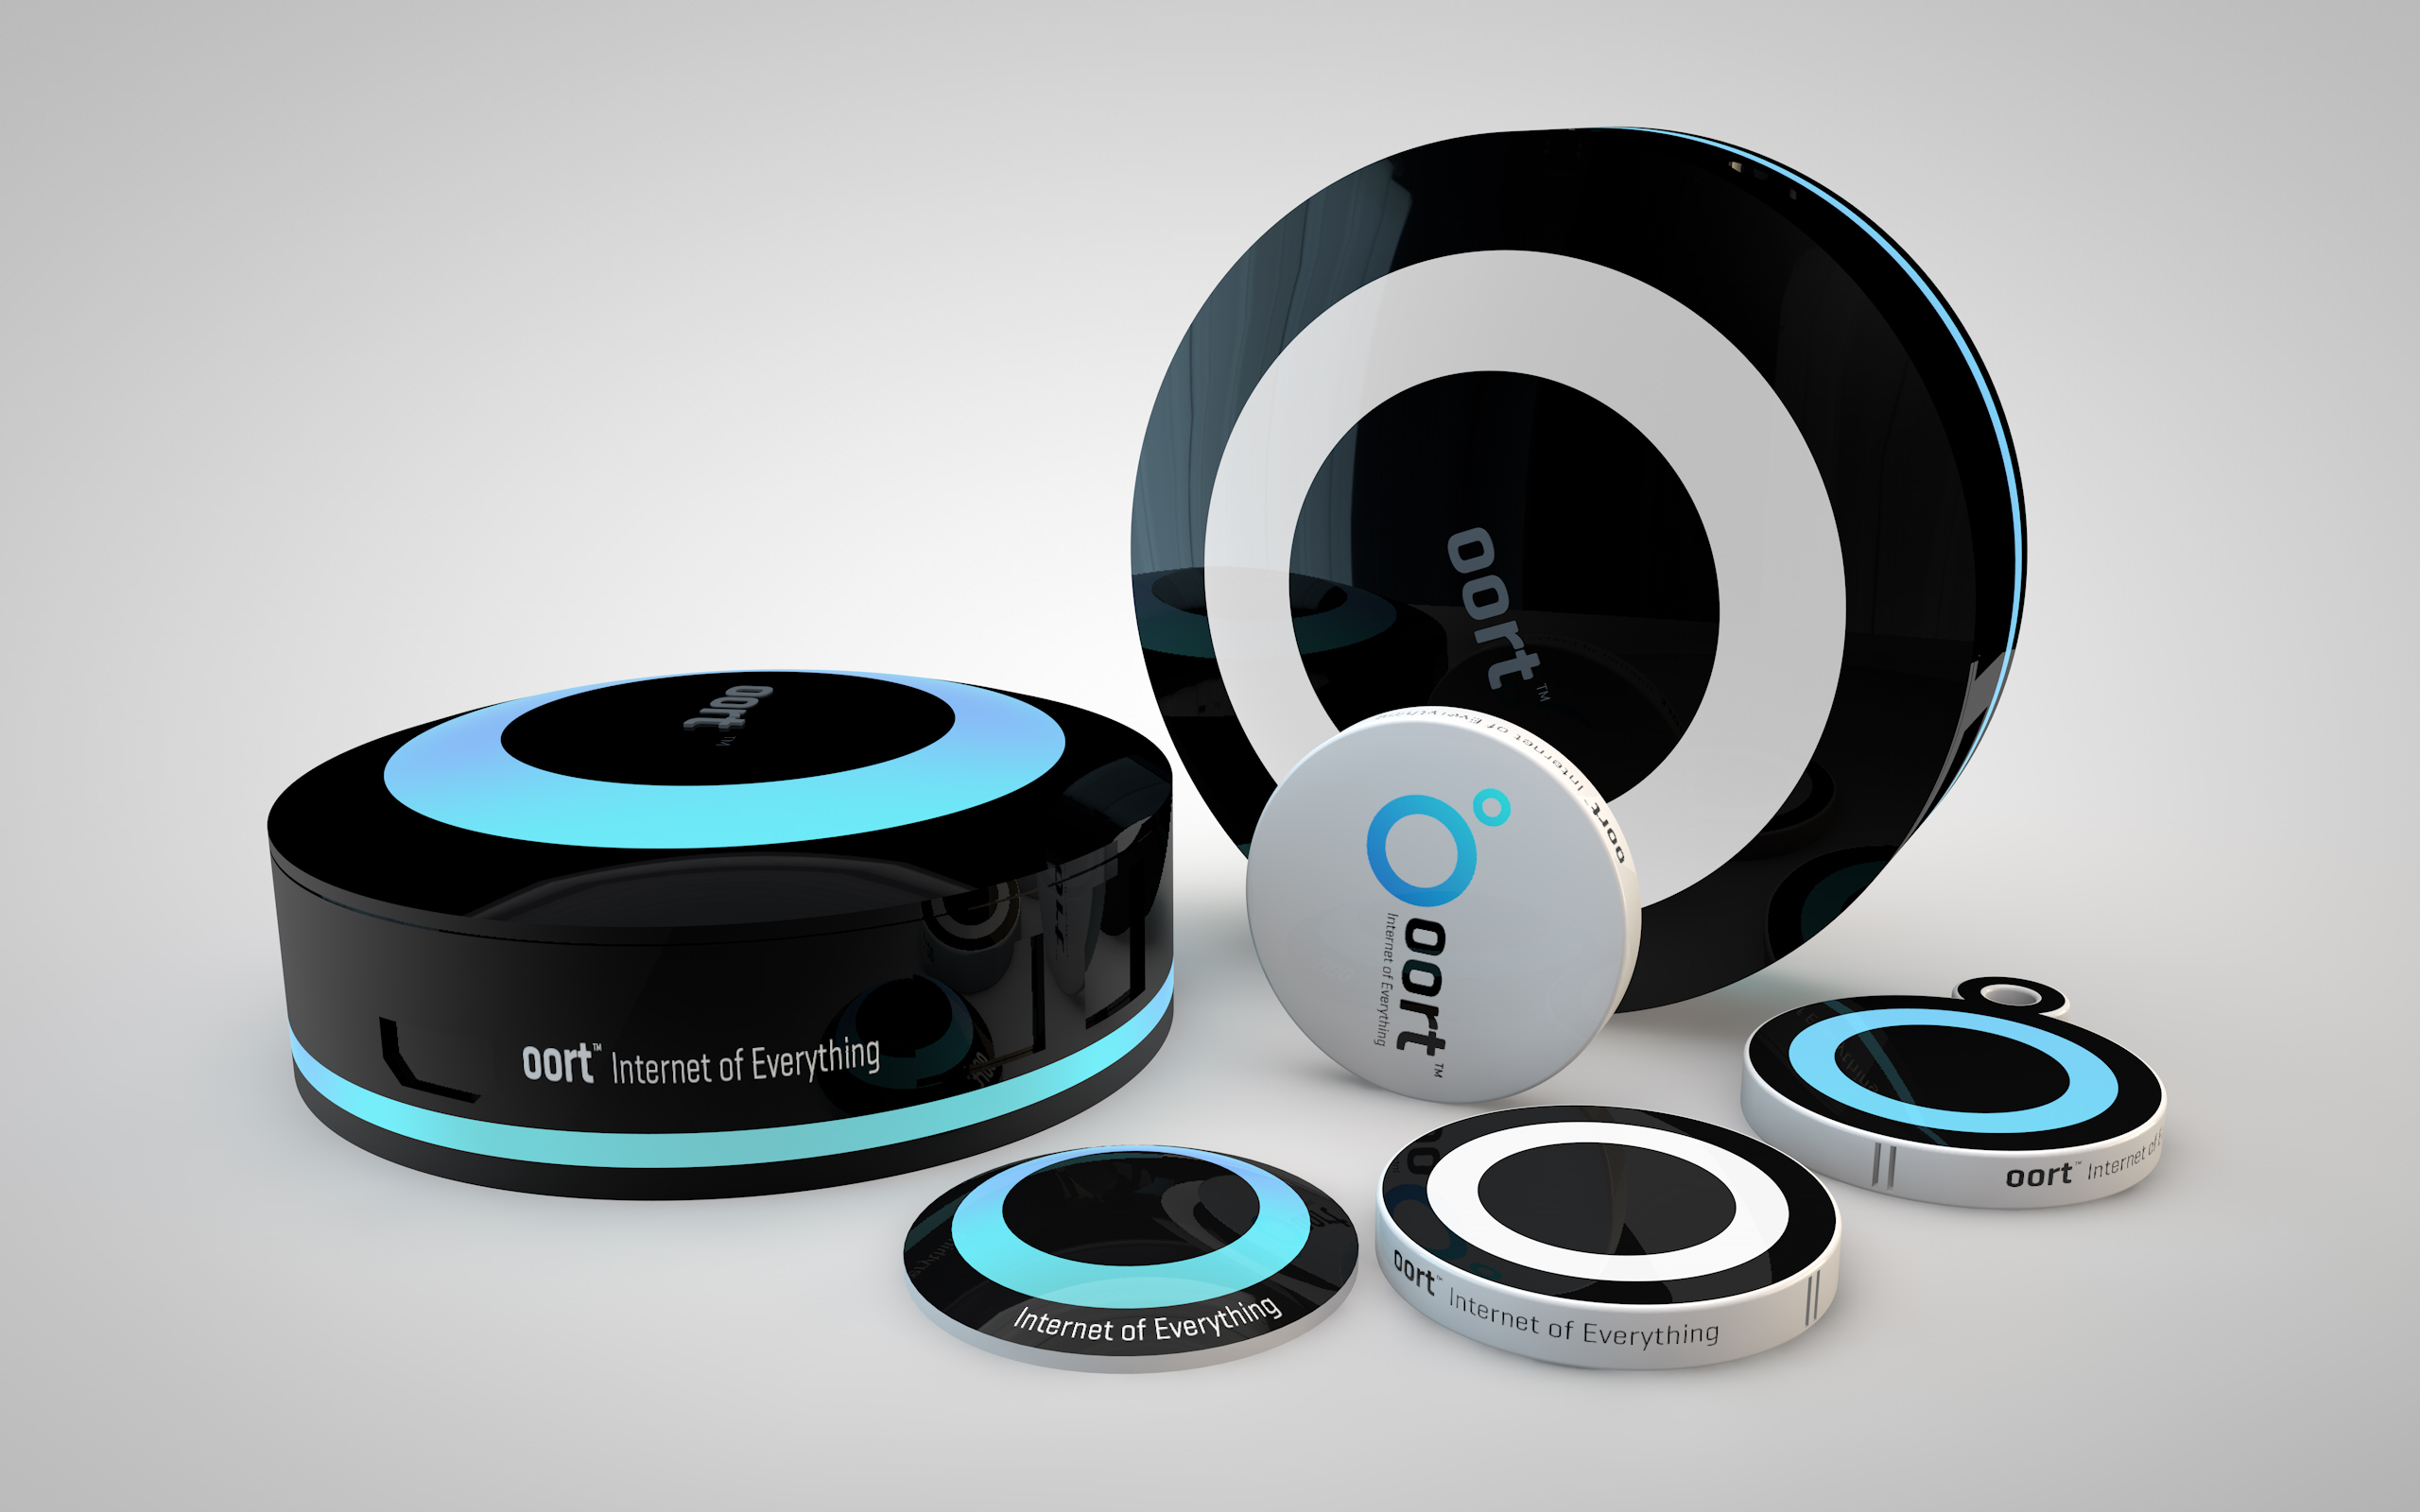 oort Internet of Things Hub and Devices (Photo: Business Wire)